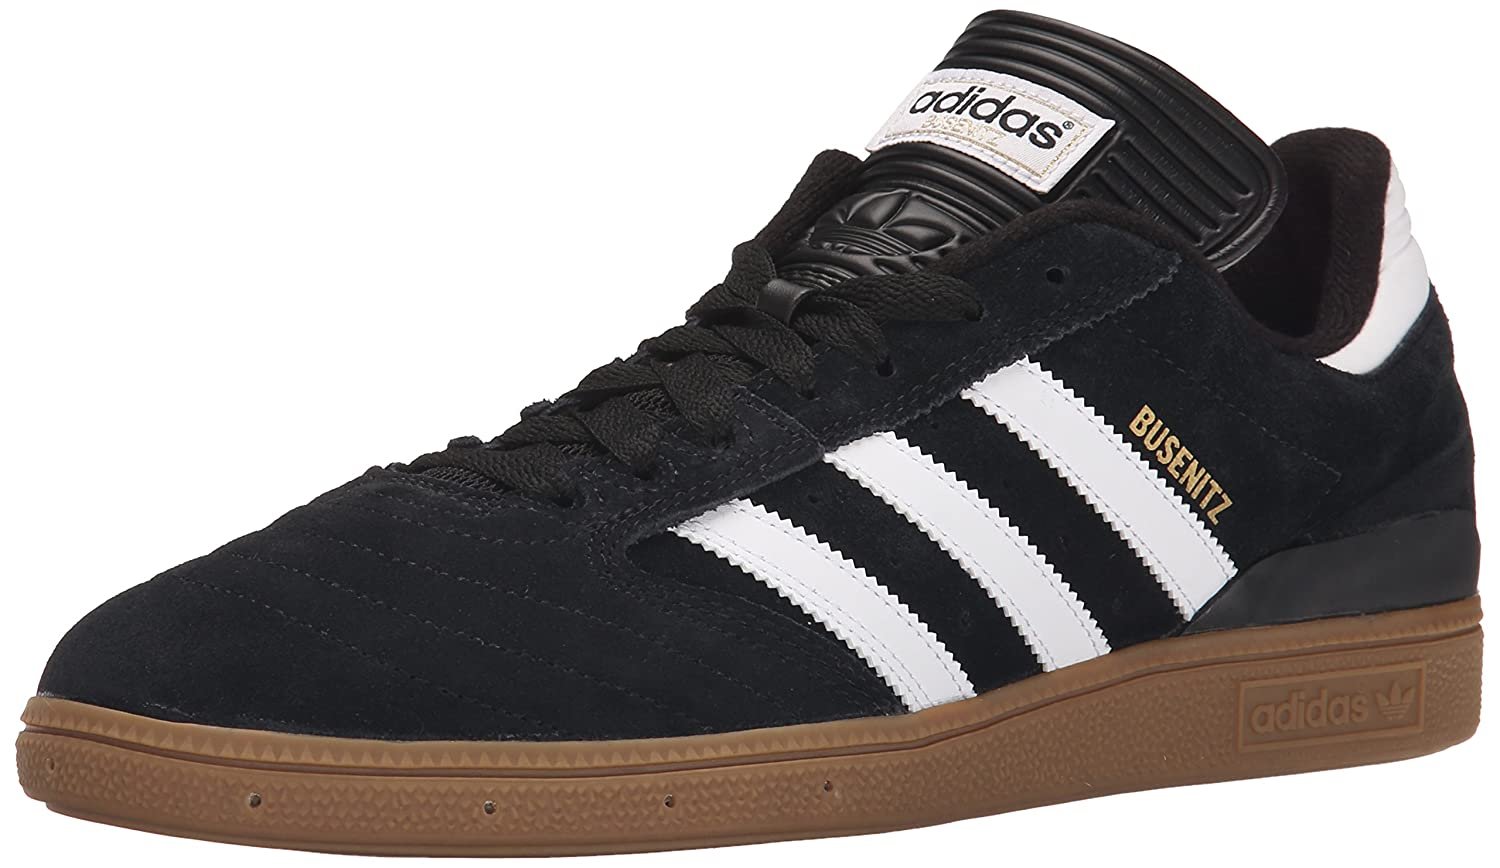 hot sale online f2ab8 b065e Amazon.com  Adidas Mens Skateboarding The Busenitz Sneaker  Fashion  Sneakers